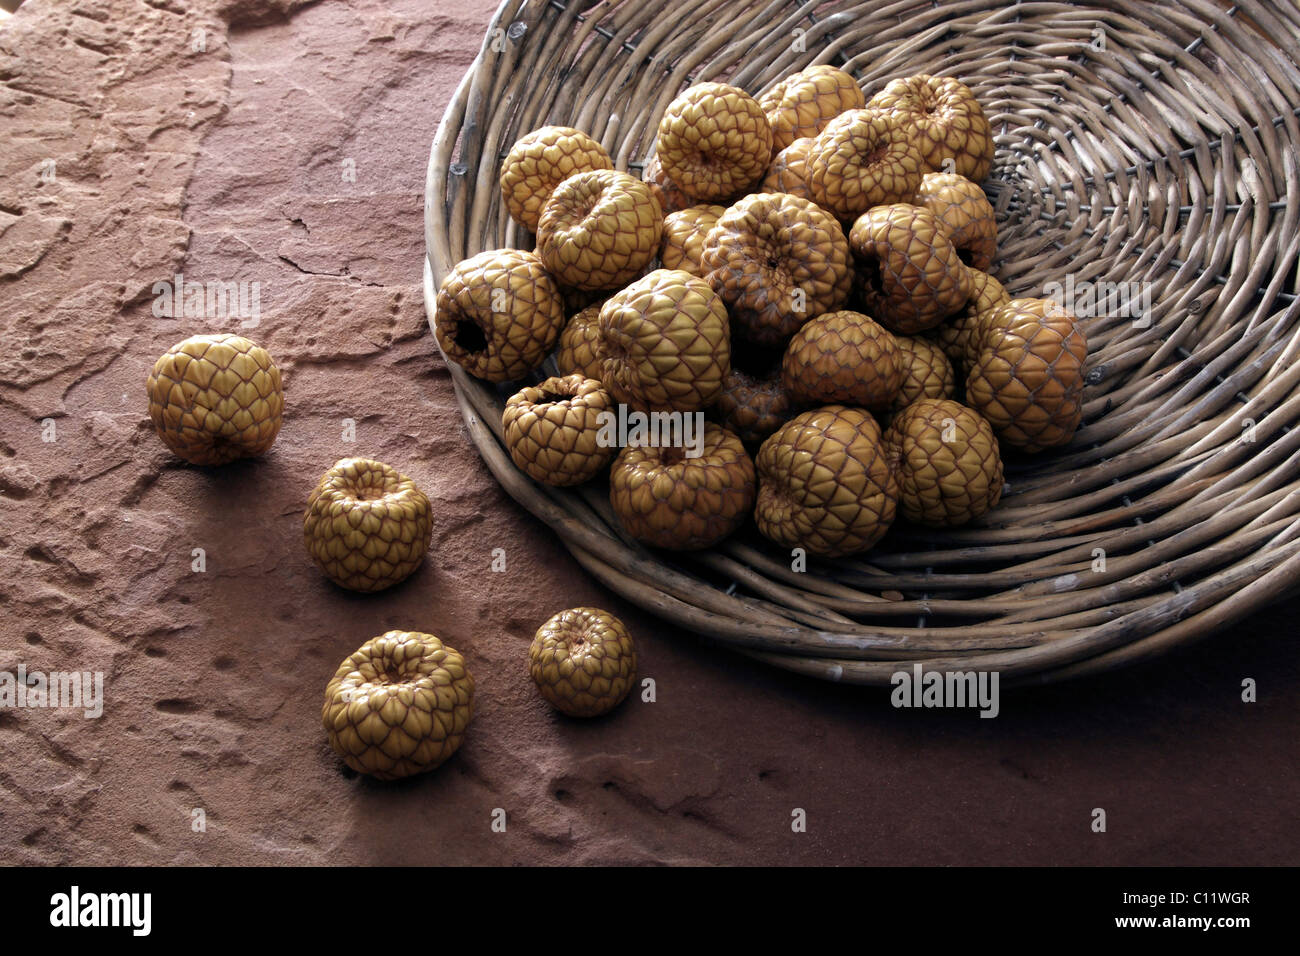 Dried fruit of Salak (Salacca), tipped from a wicker plate on sandstone - Stock Image